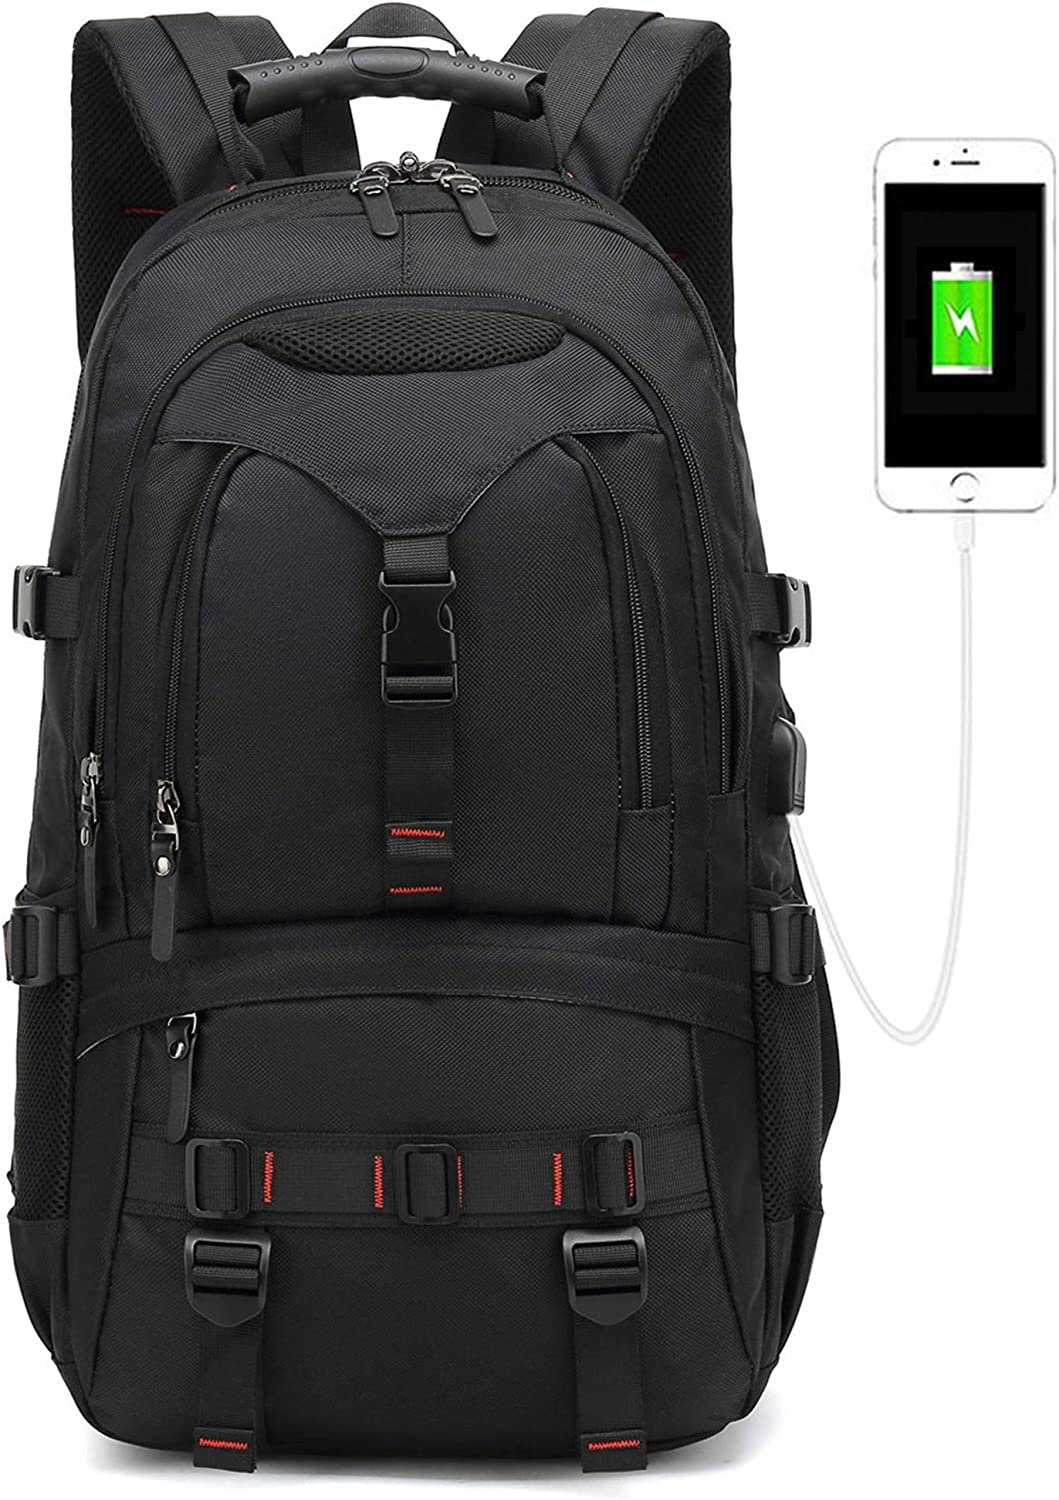 2019 New Model laptop backpack,anti theft with USB Charging Port Mobile charge ackpack 17-inch business Travel school Computer backpack for men women Waterproof Backpack college students bag black